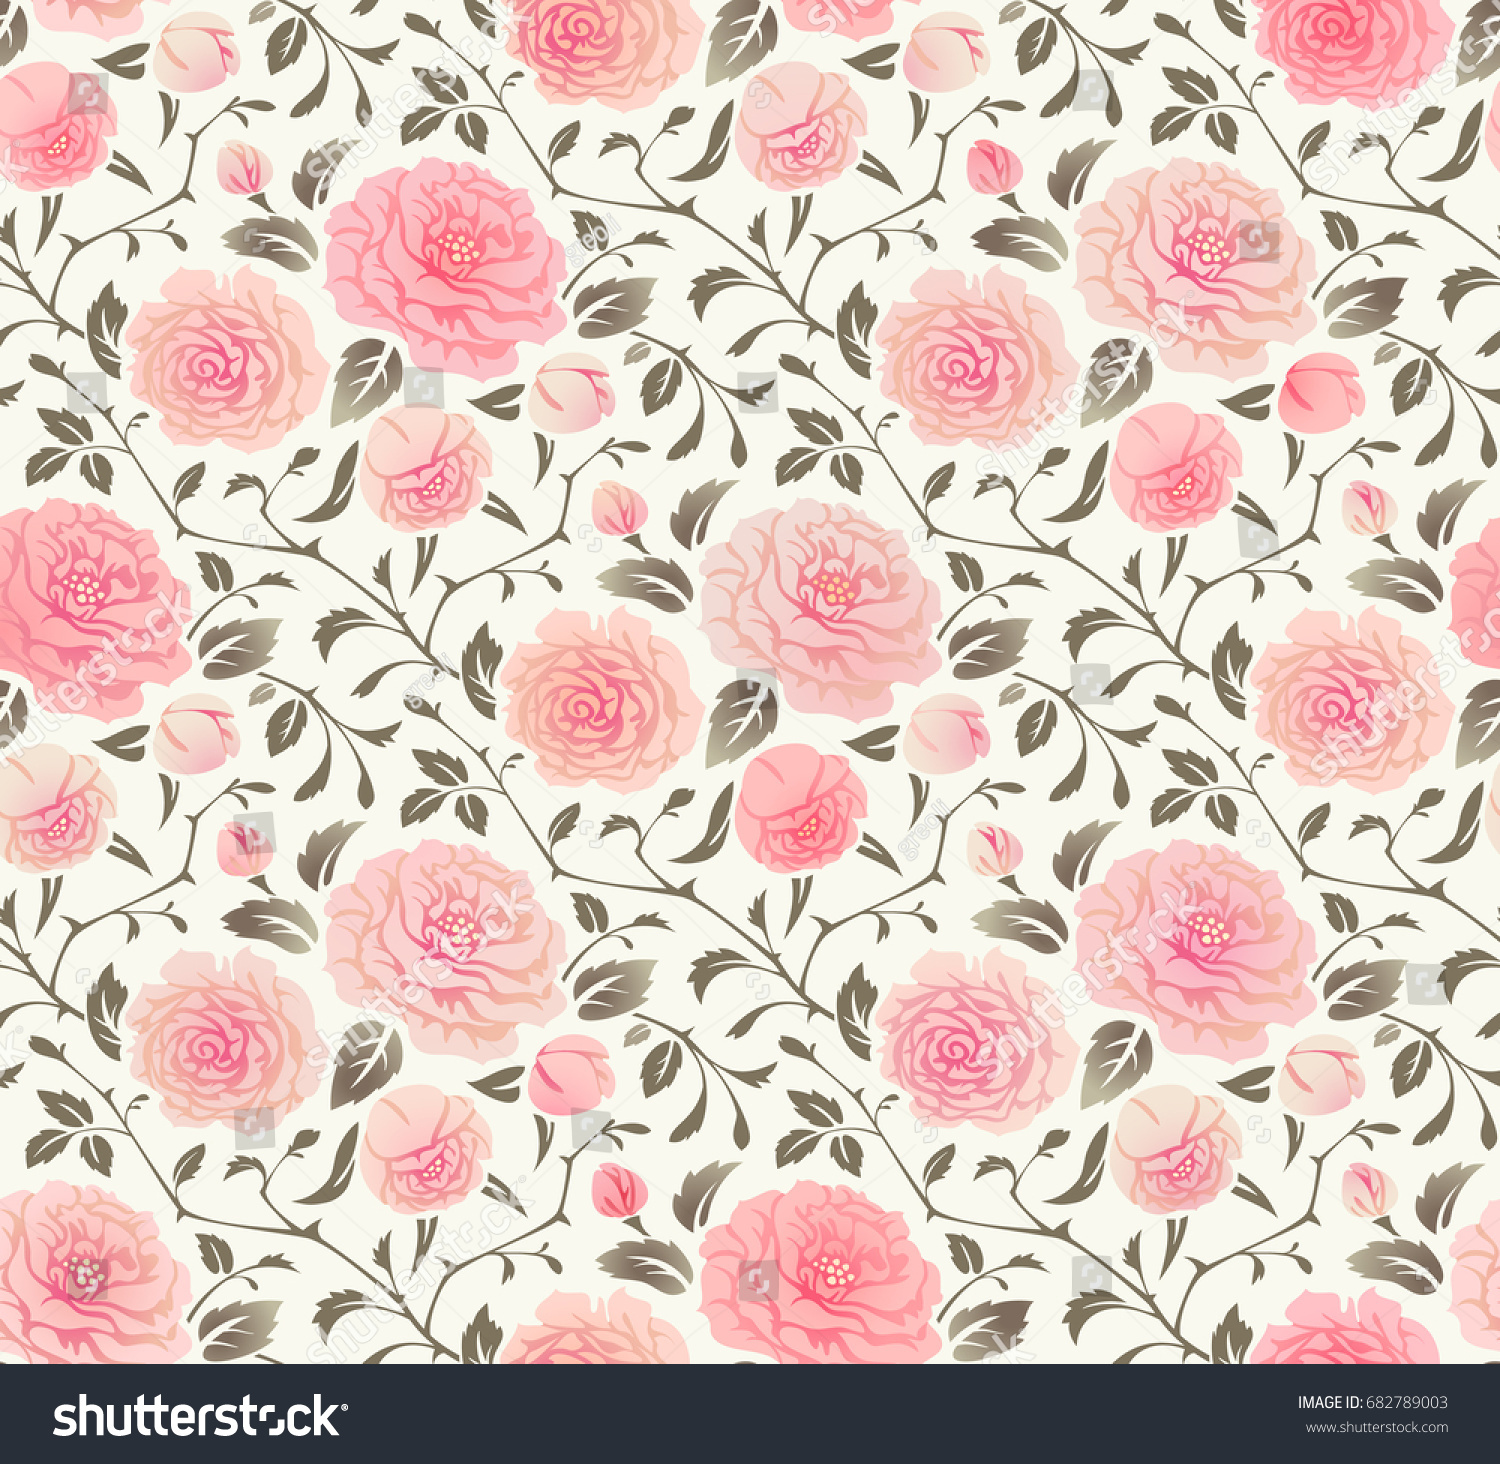 Floral Background With Roses Seamless Pattern For Wallpaper Fabric Digital Paper Fills